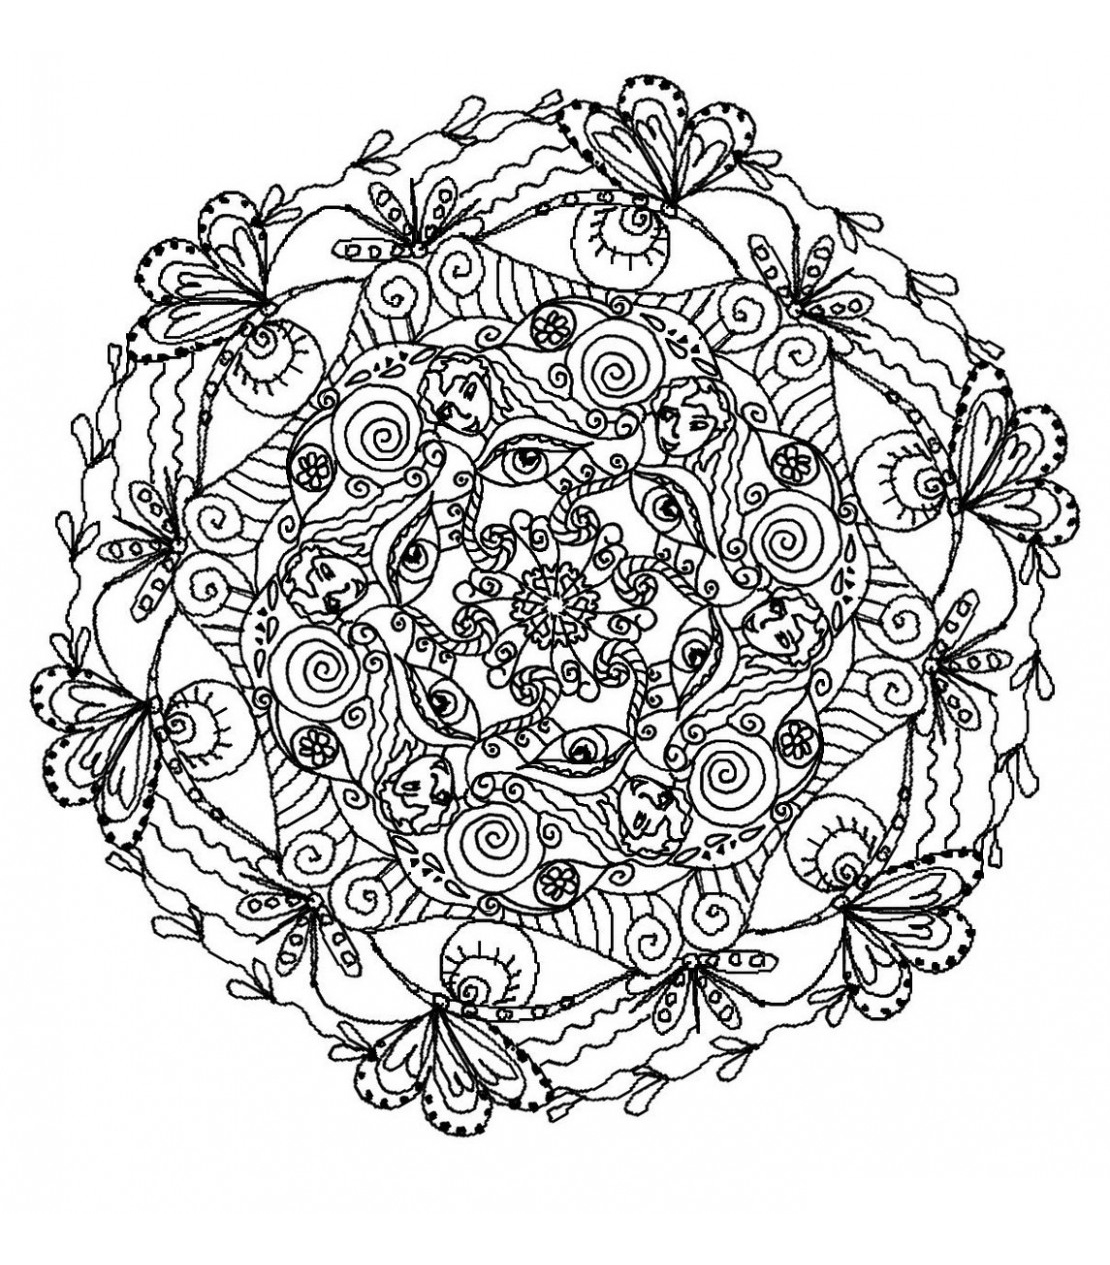 Mandala to color flowers vegetation to print 14 - Mandalas with ...